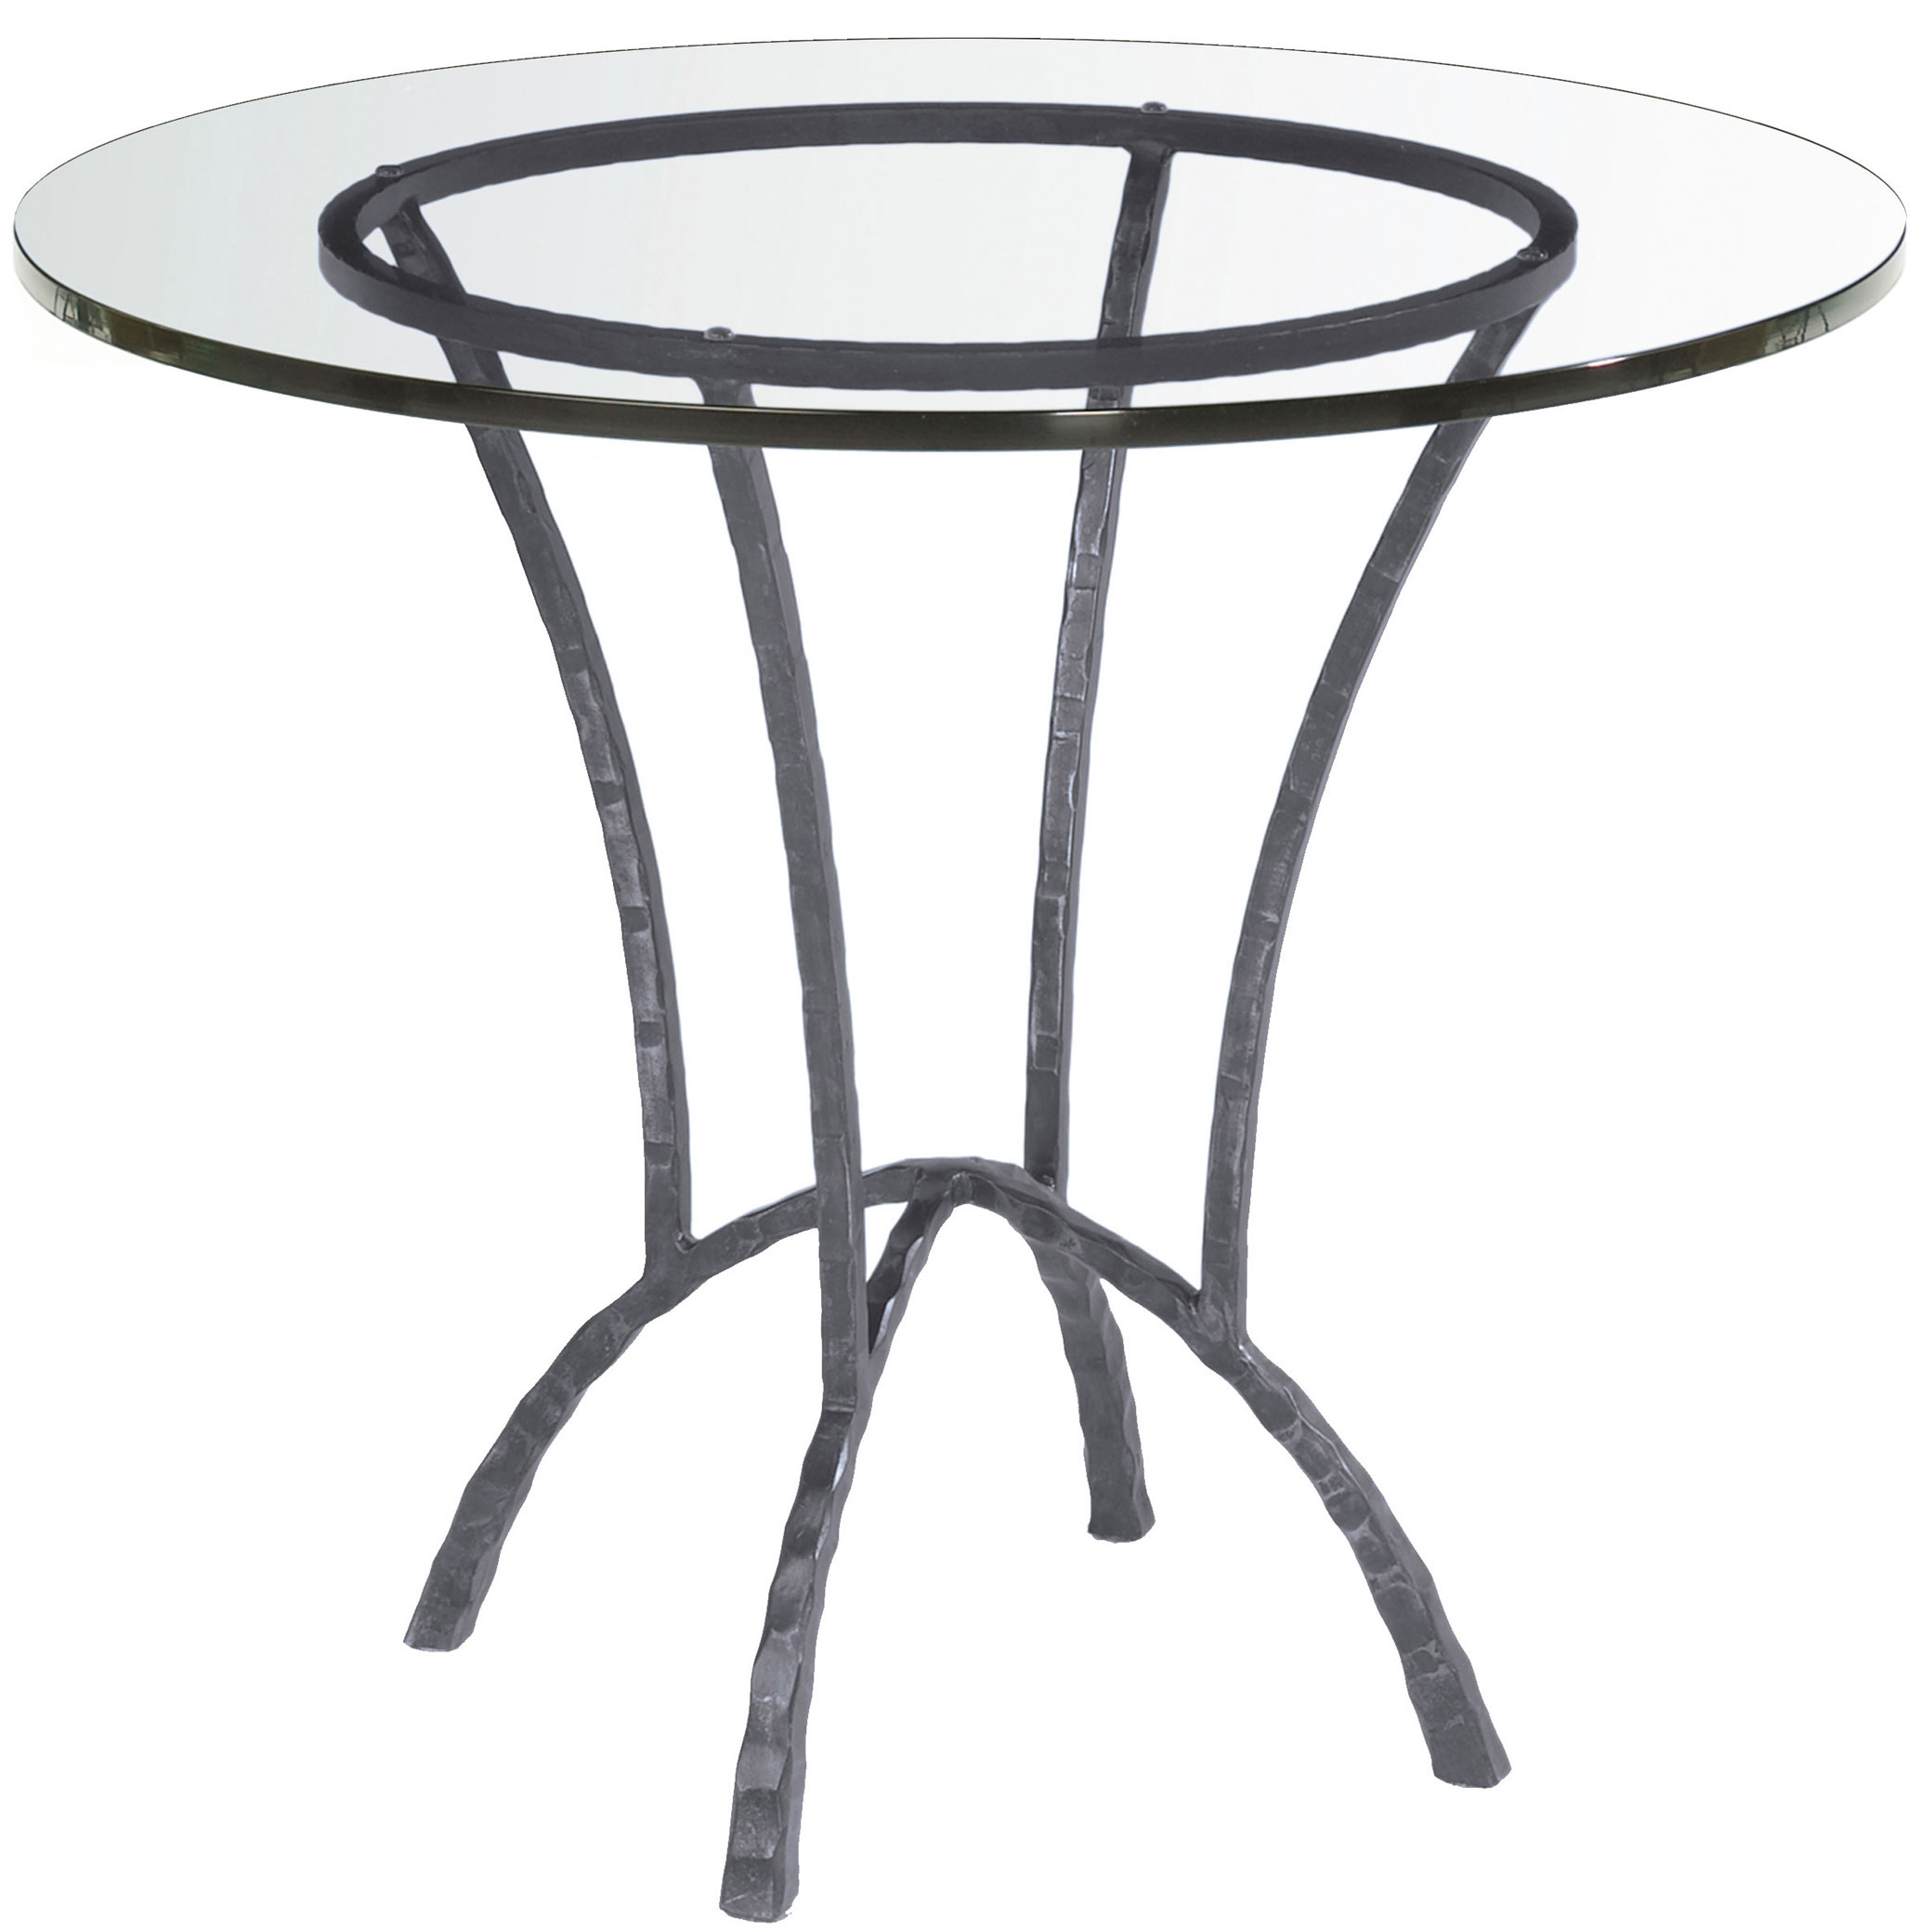 Round wrought iron hudson dining table for Round glass top coffee table wrought iron